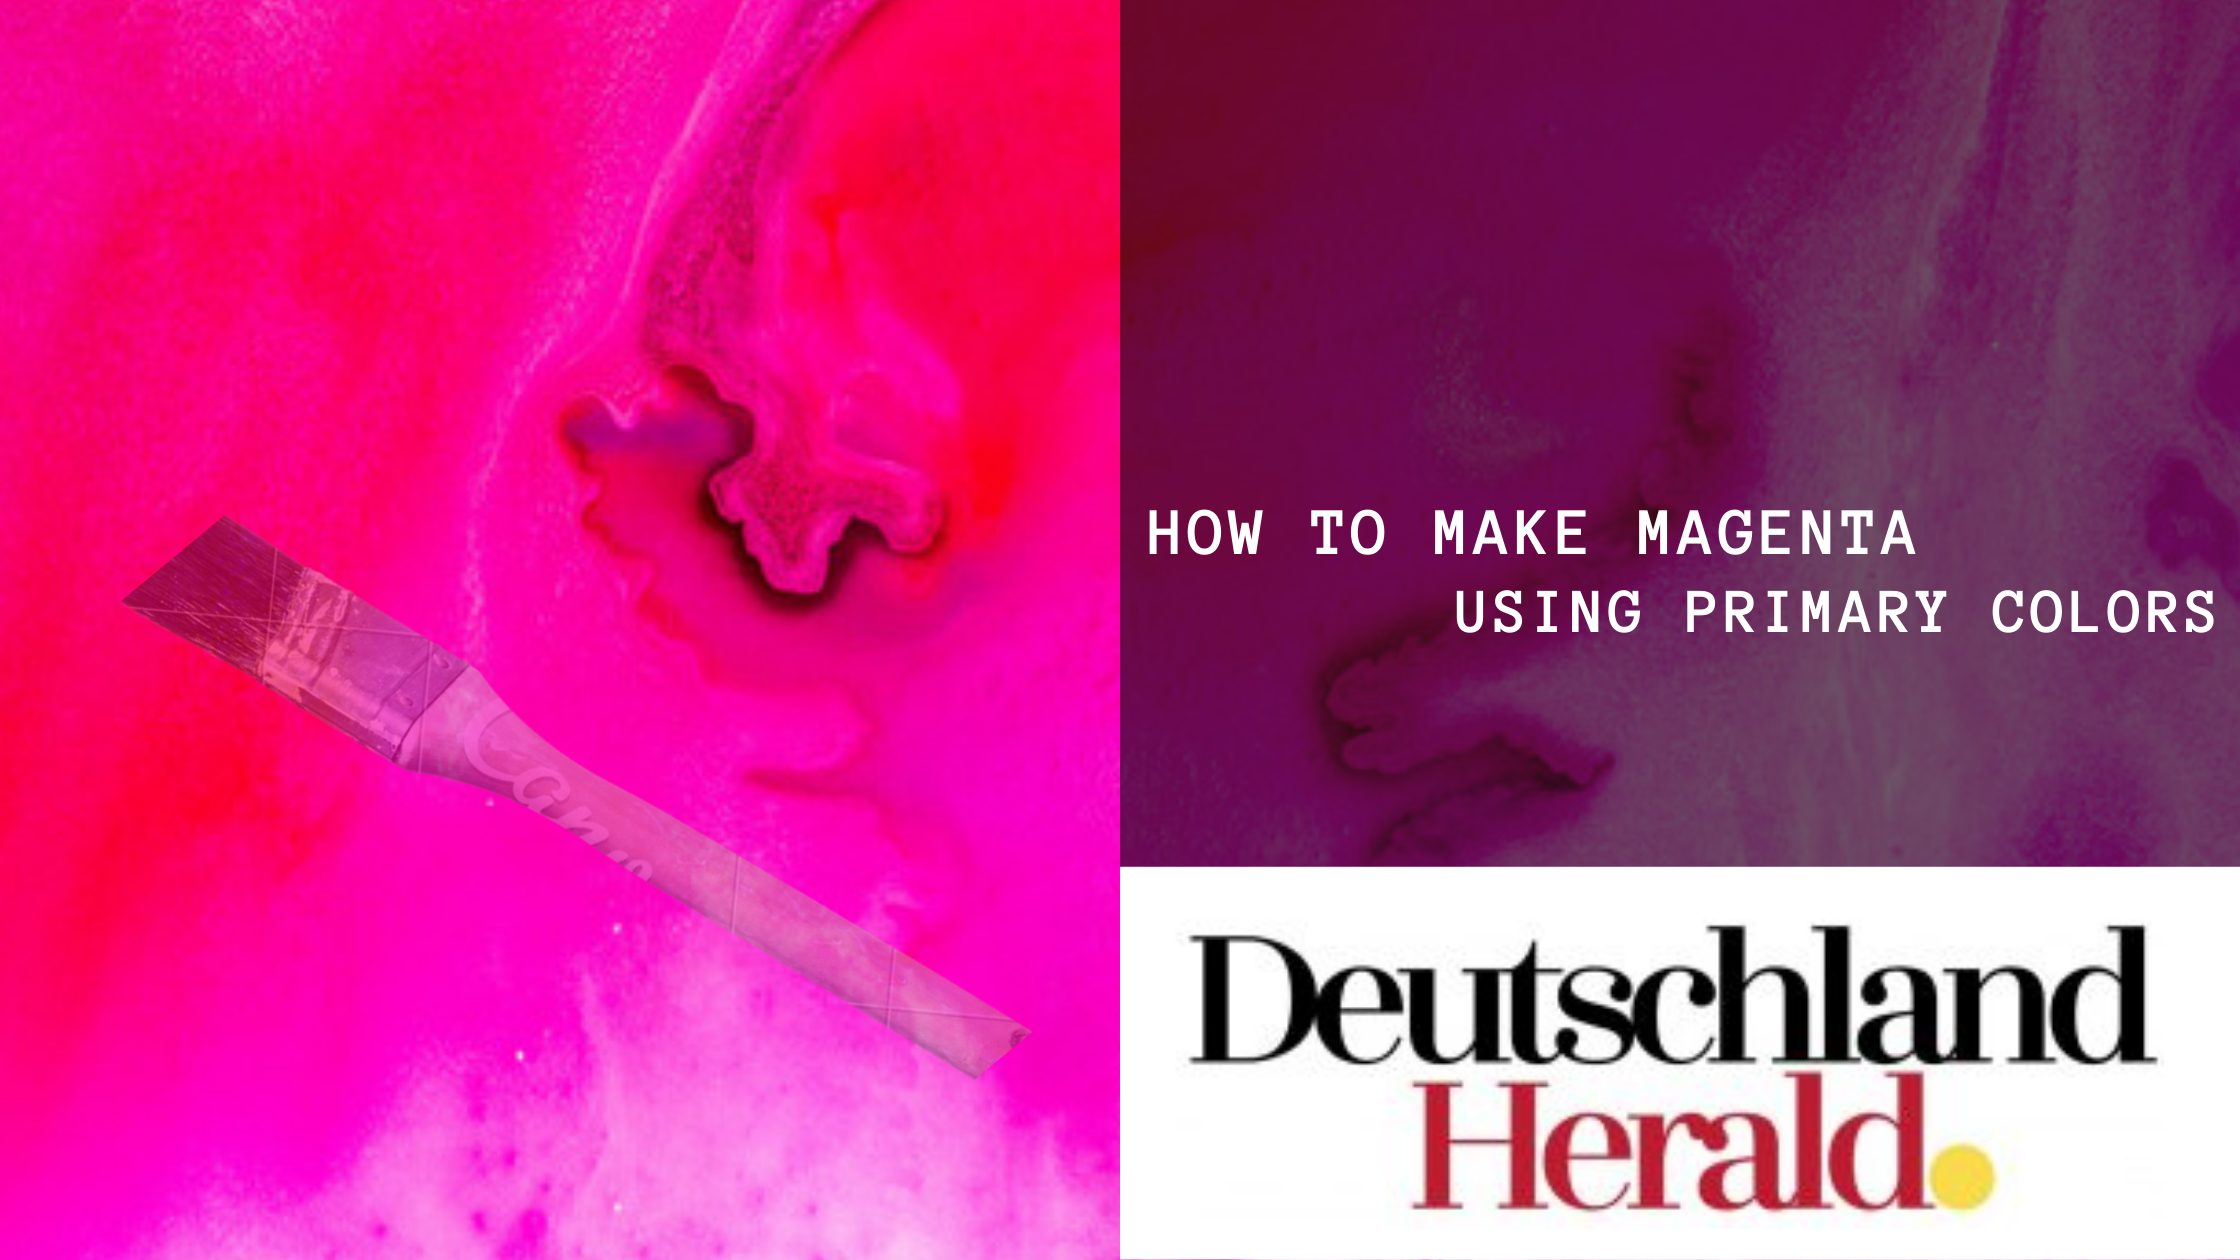 How To Make Magenta: Using Primary Colors